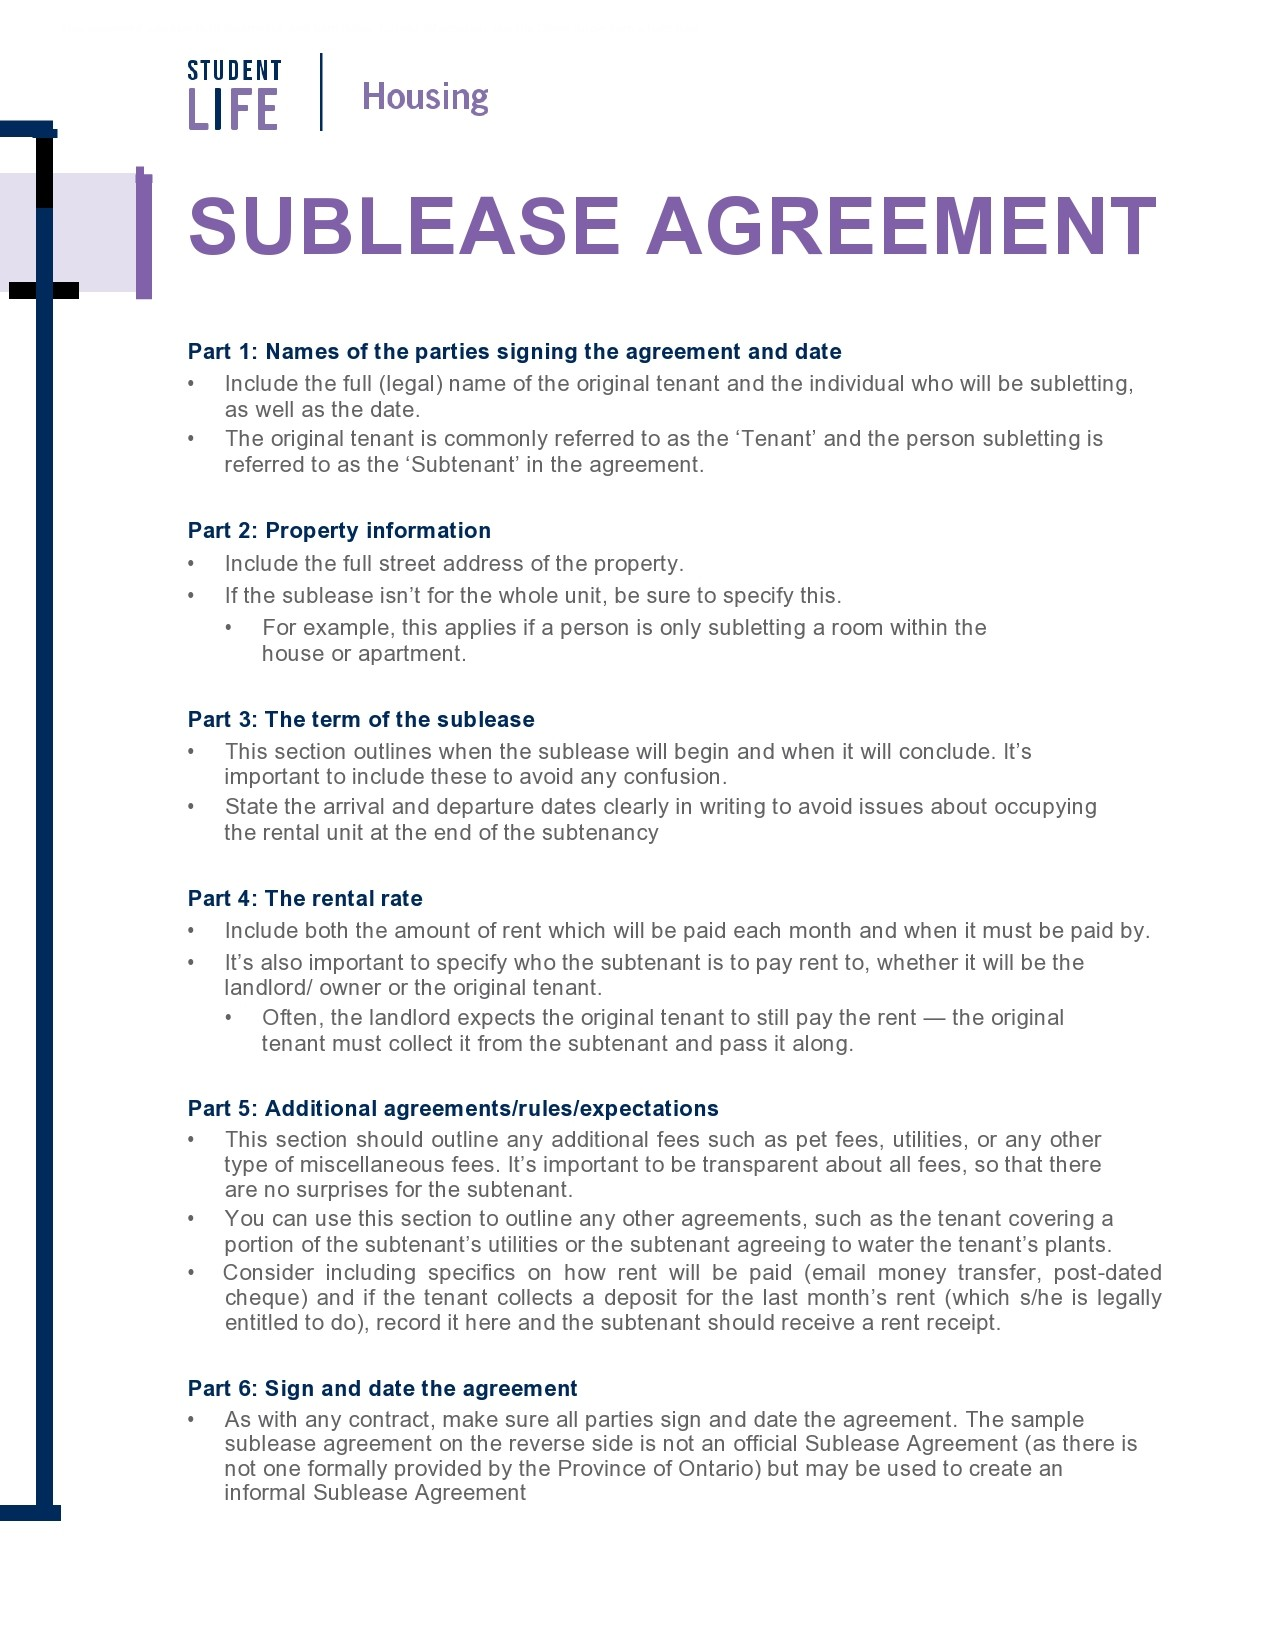 Free residential sublease agreement 37